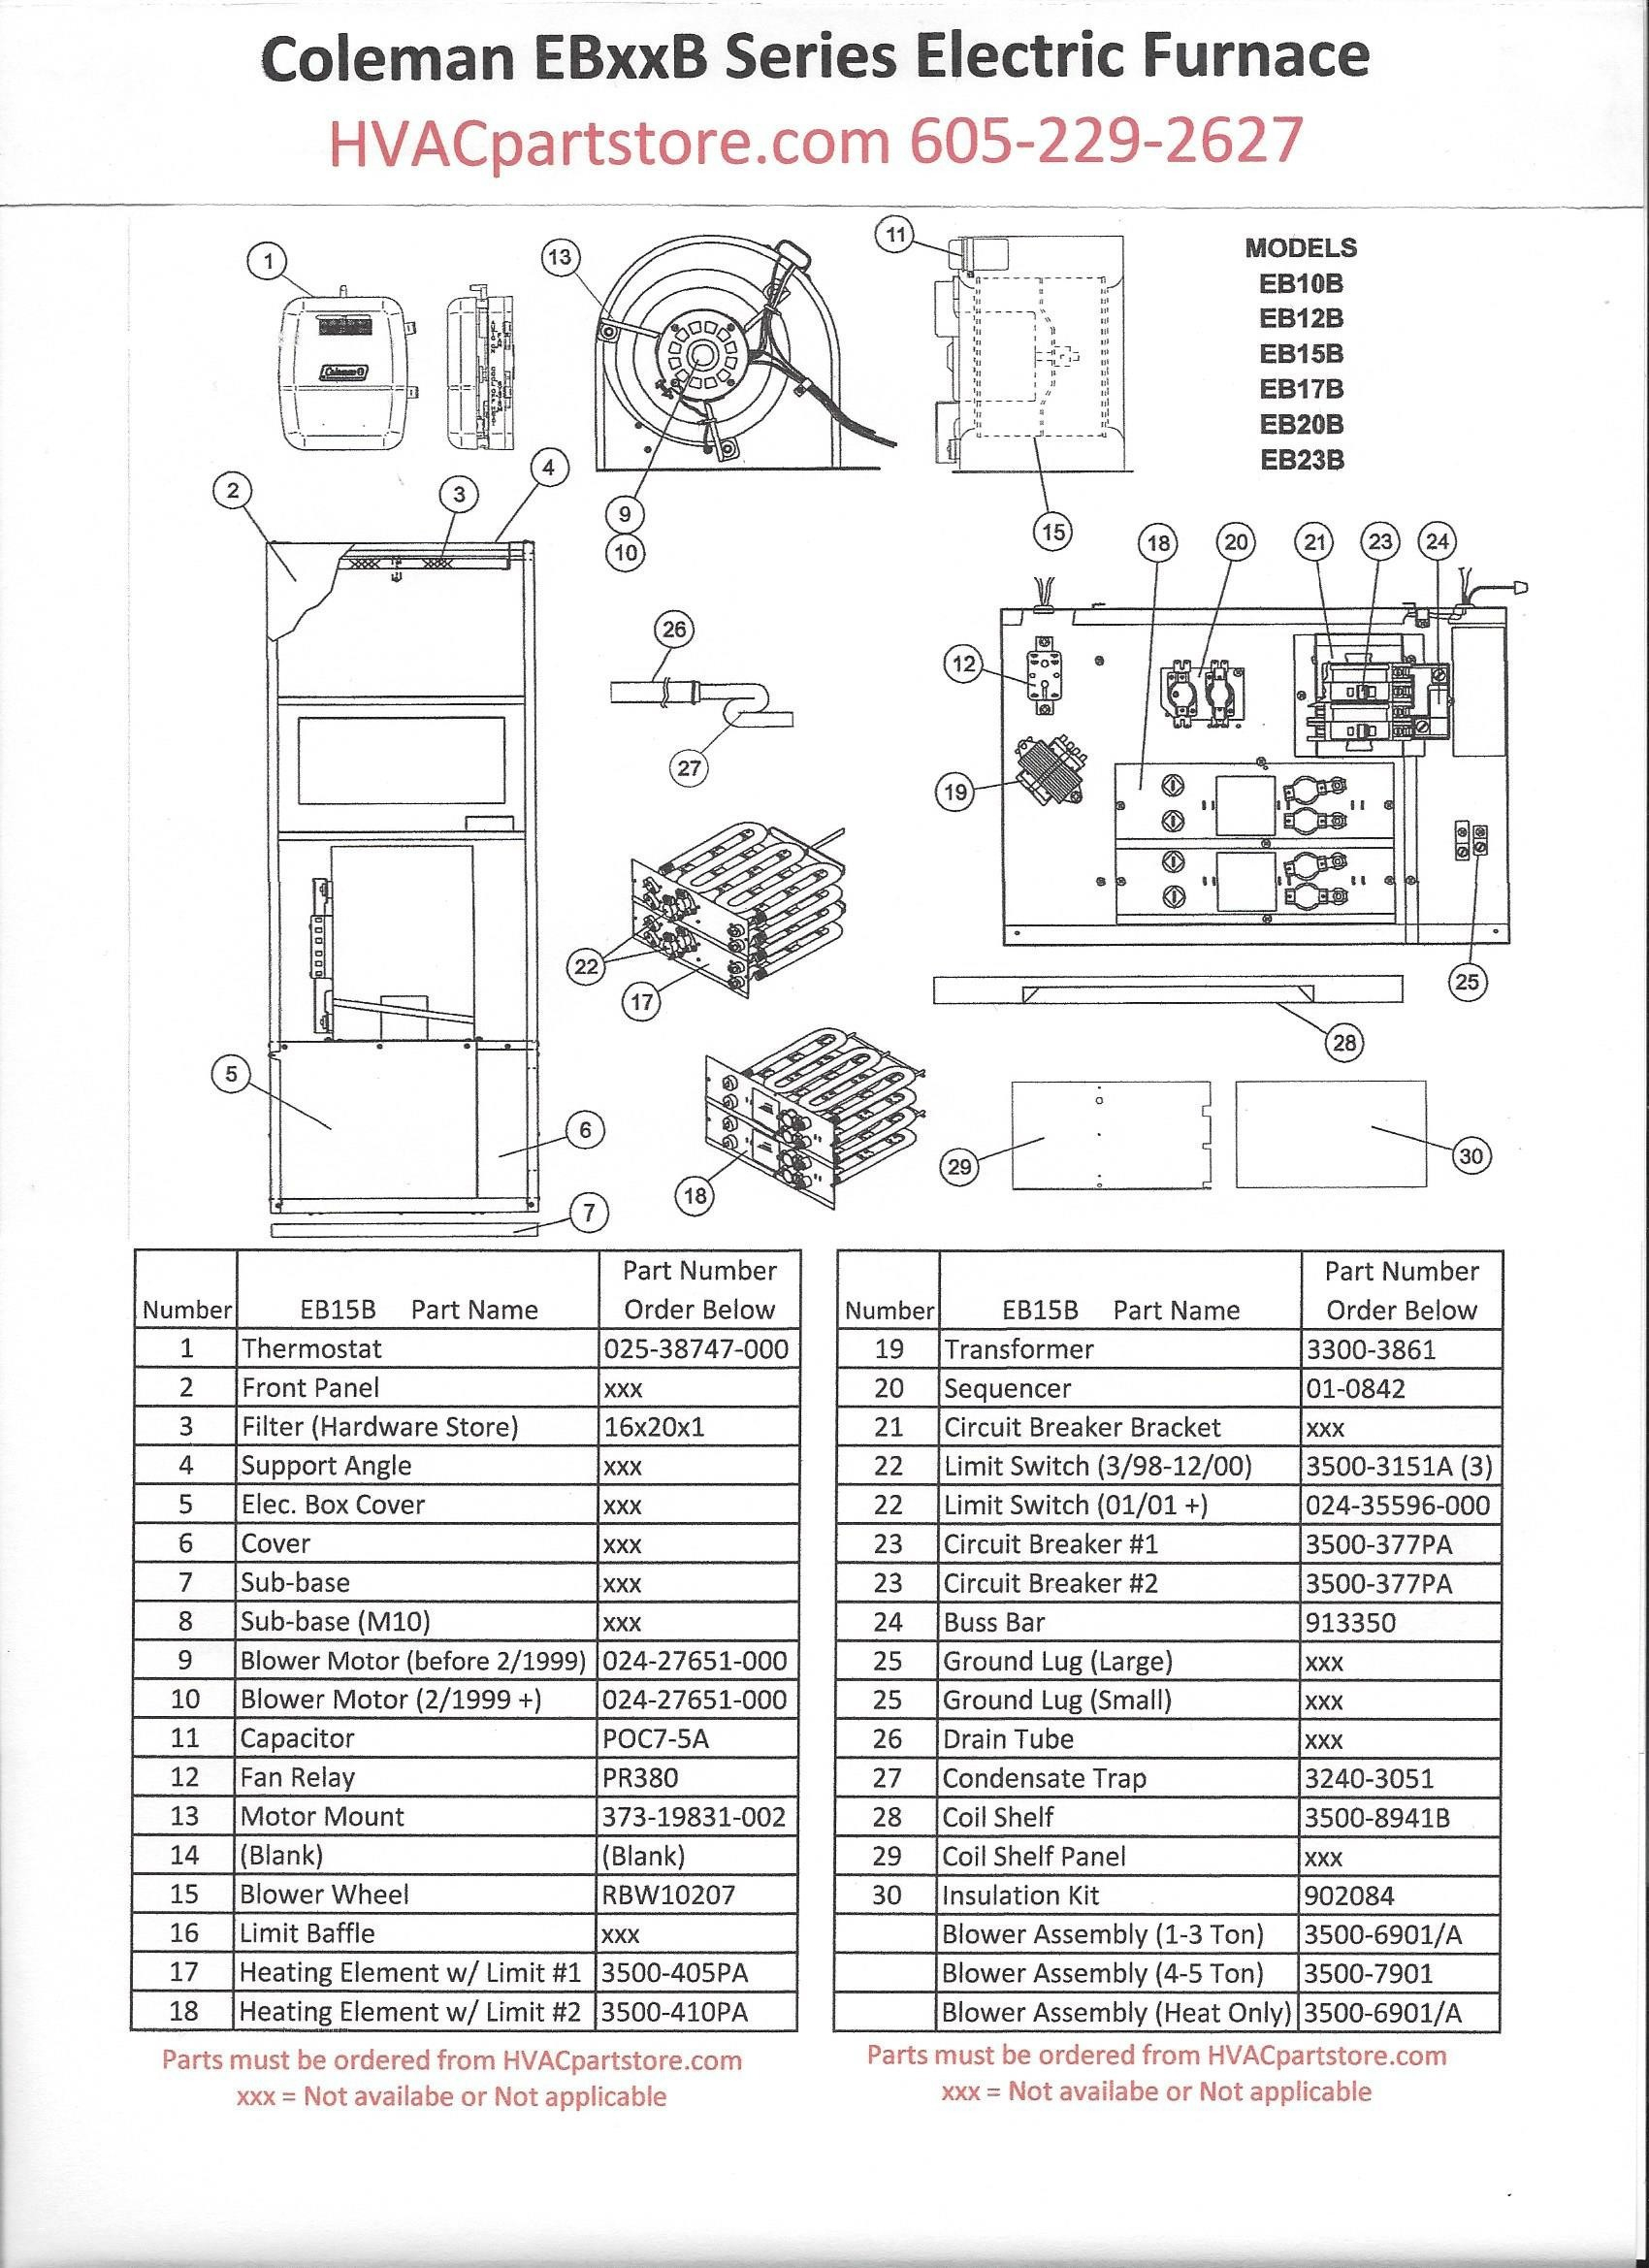 atwood furnace wiring diagram Download-Wiring Diagram for Rv Furnace Inspirationa Wiring Diagrams for Rv Refrence Electrical Diagram for House Unique 9-r